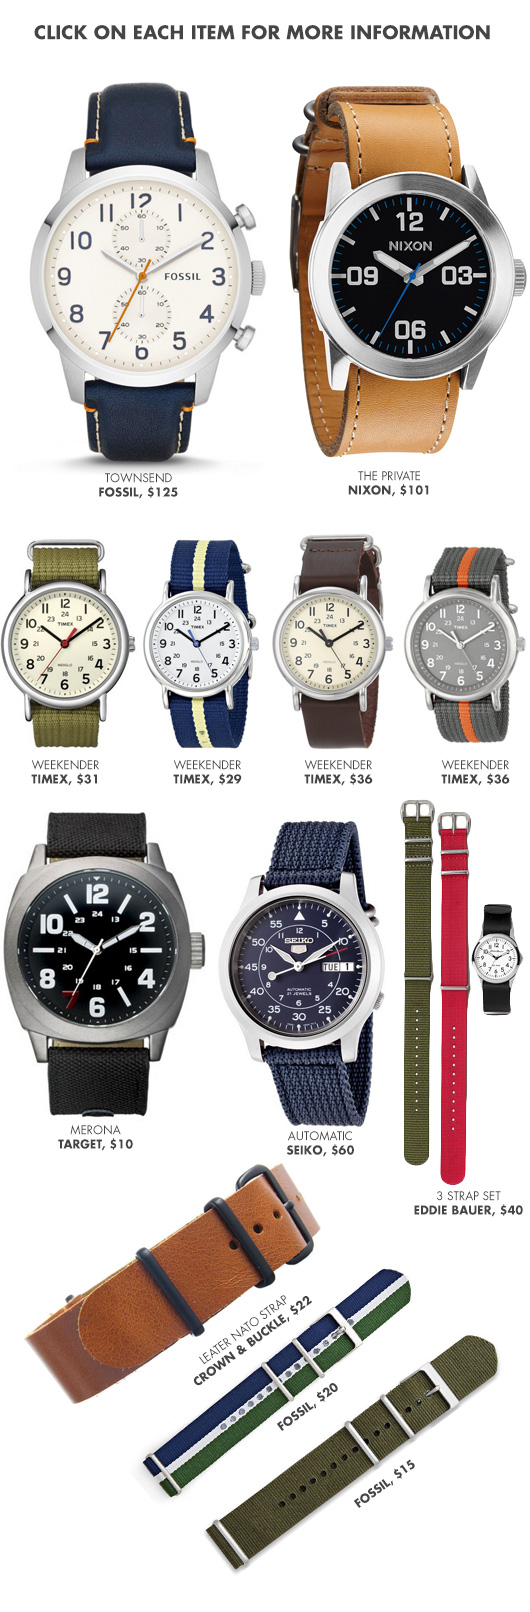 A collage of watches